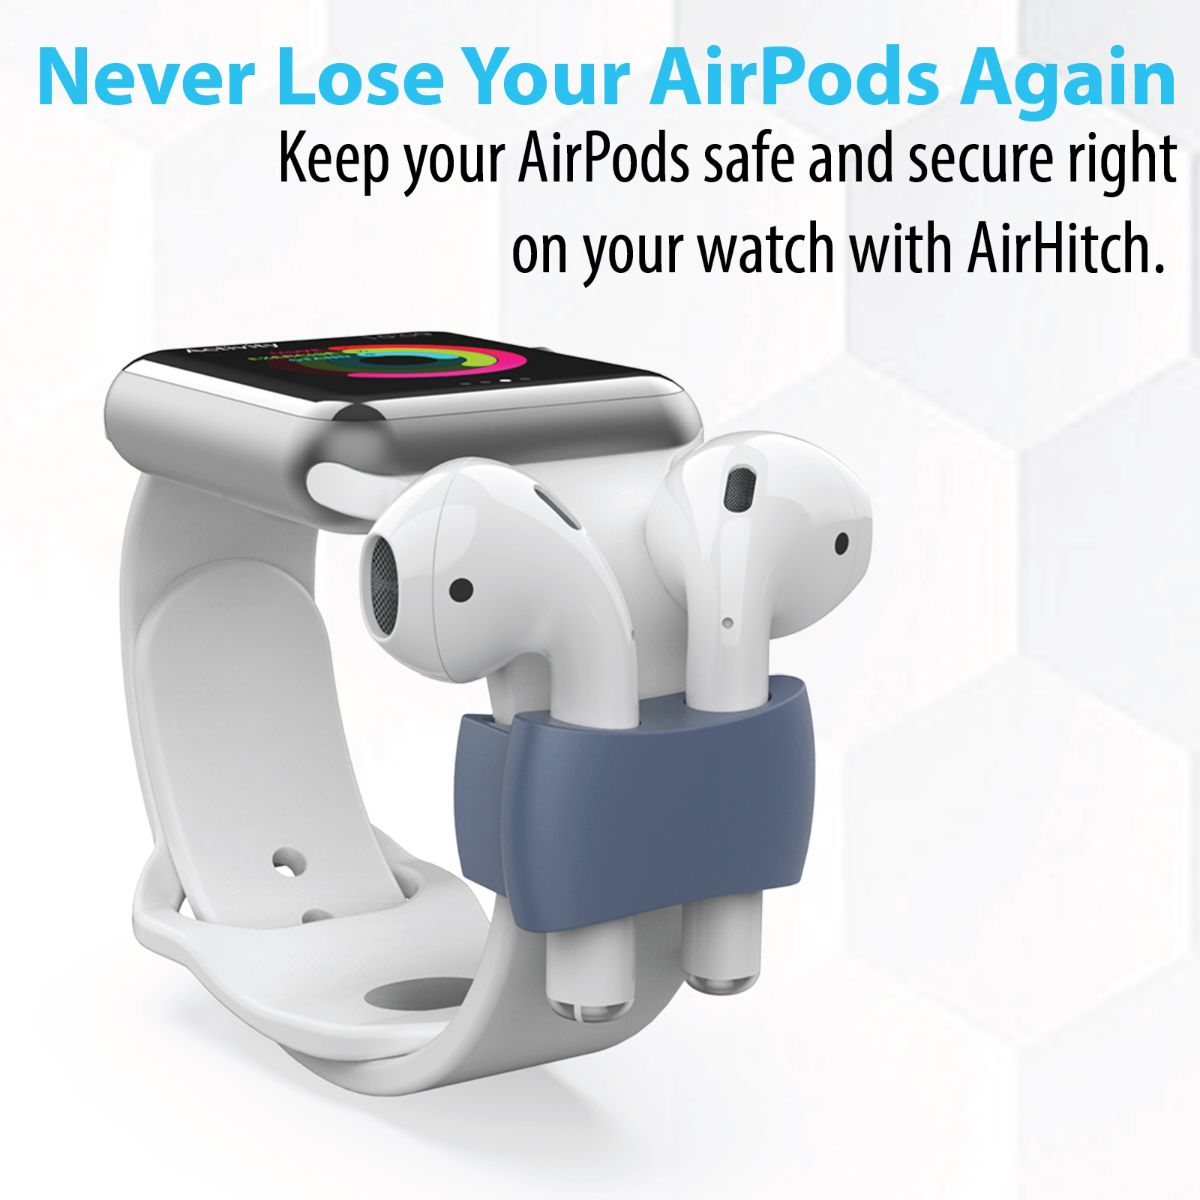 Promate AirPods Watch Band Holder, Anti-Lost Shockproof Silicone Watch Strap Holder Clip for Apple AirPods and AirPods 2, Apple Watch - Navy Blue